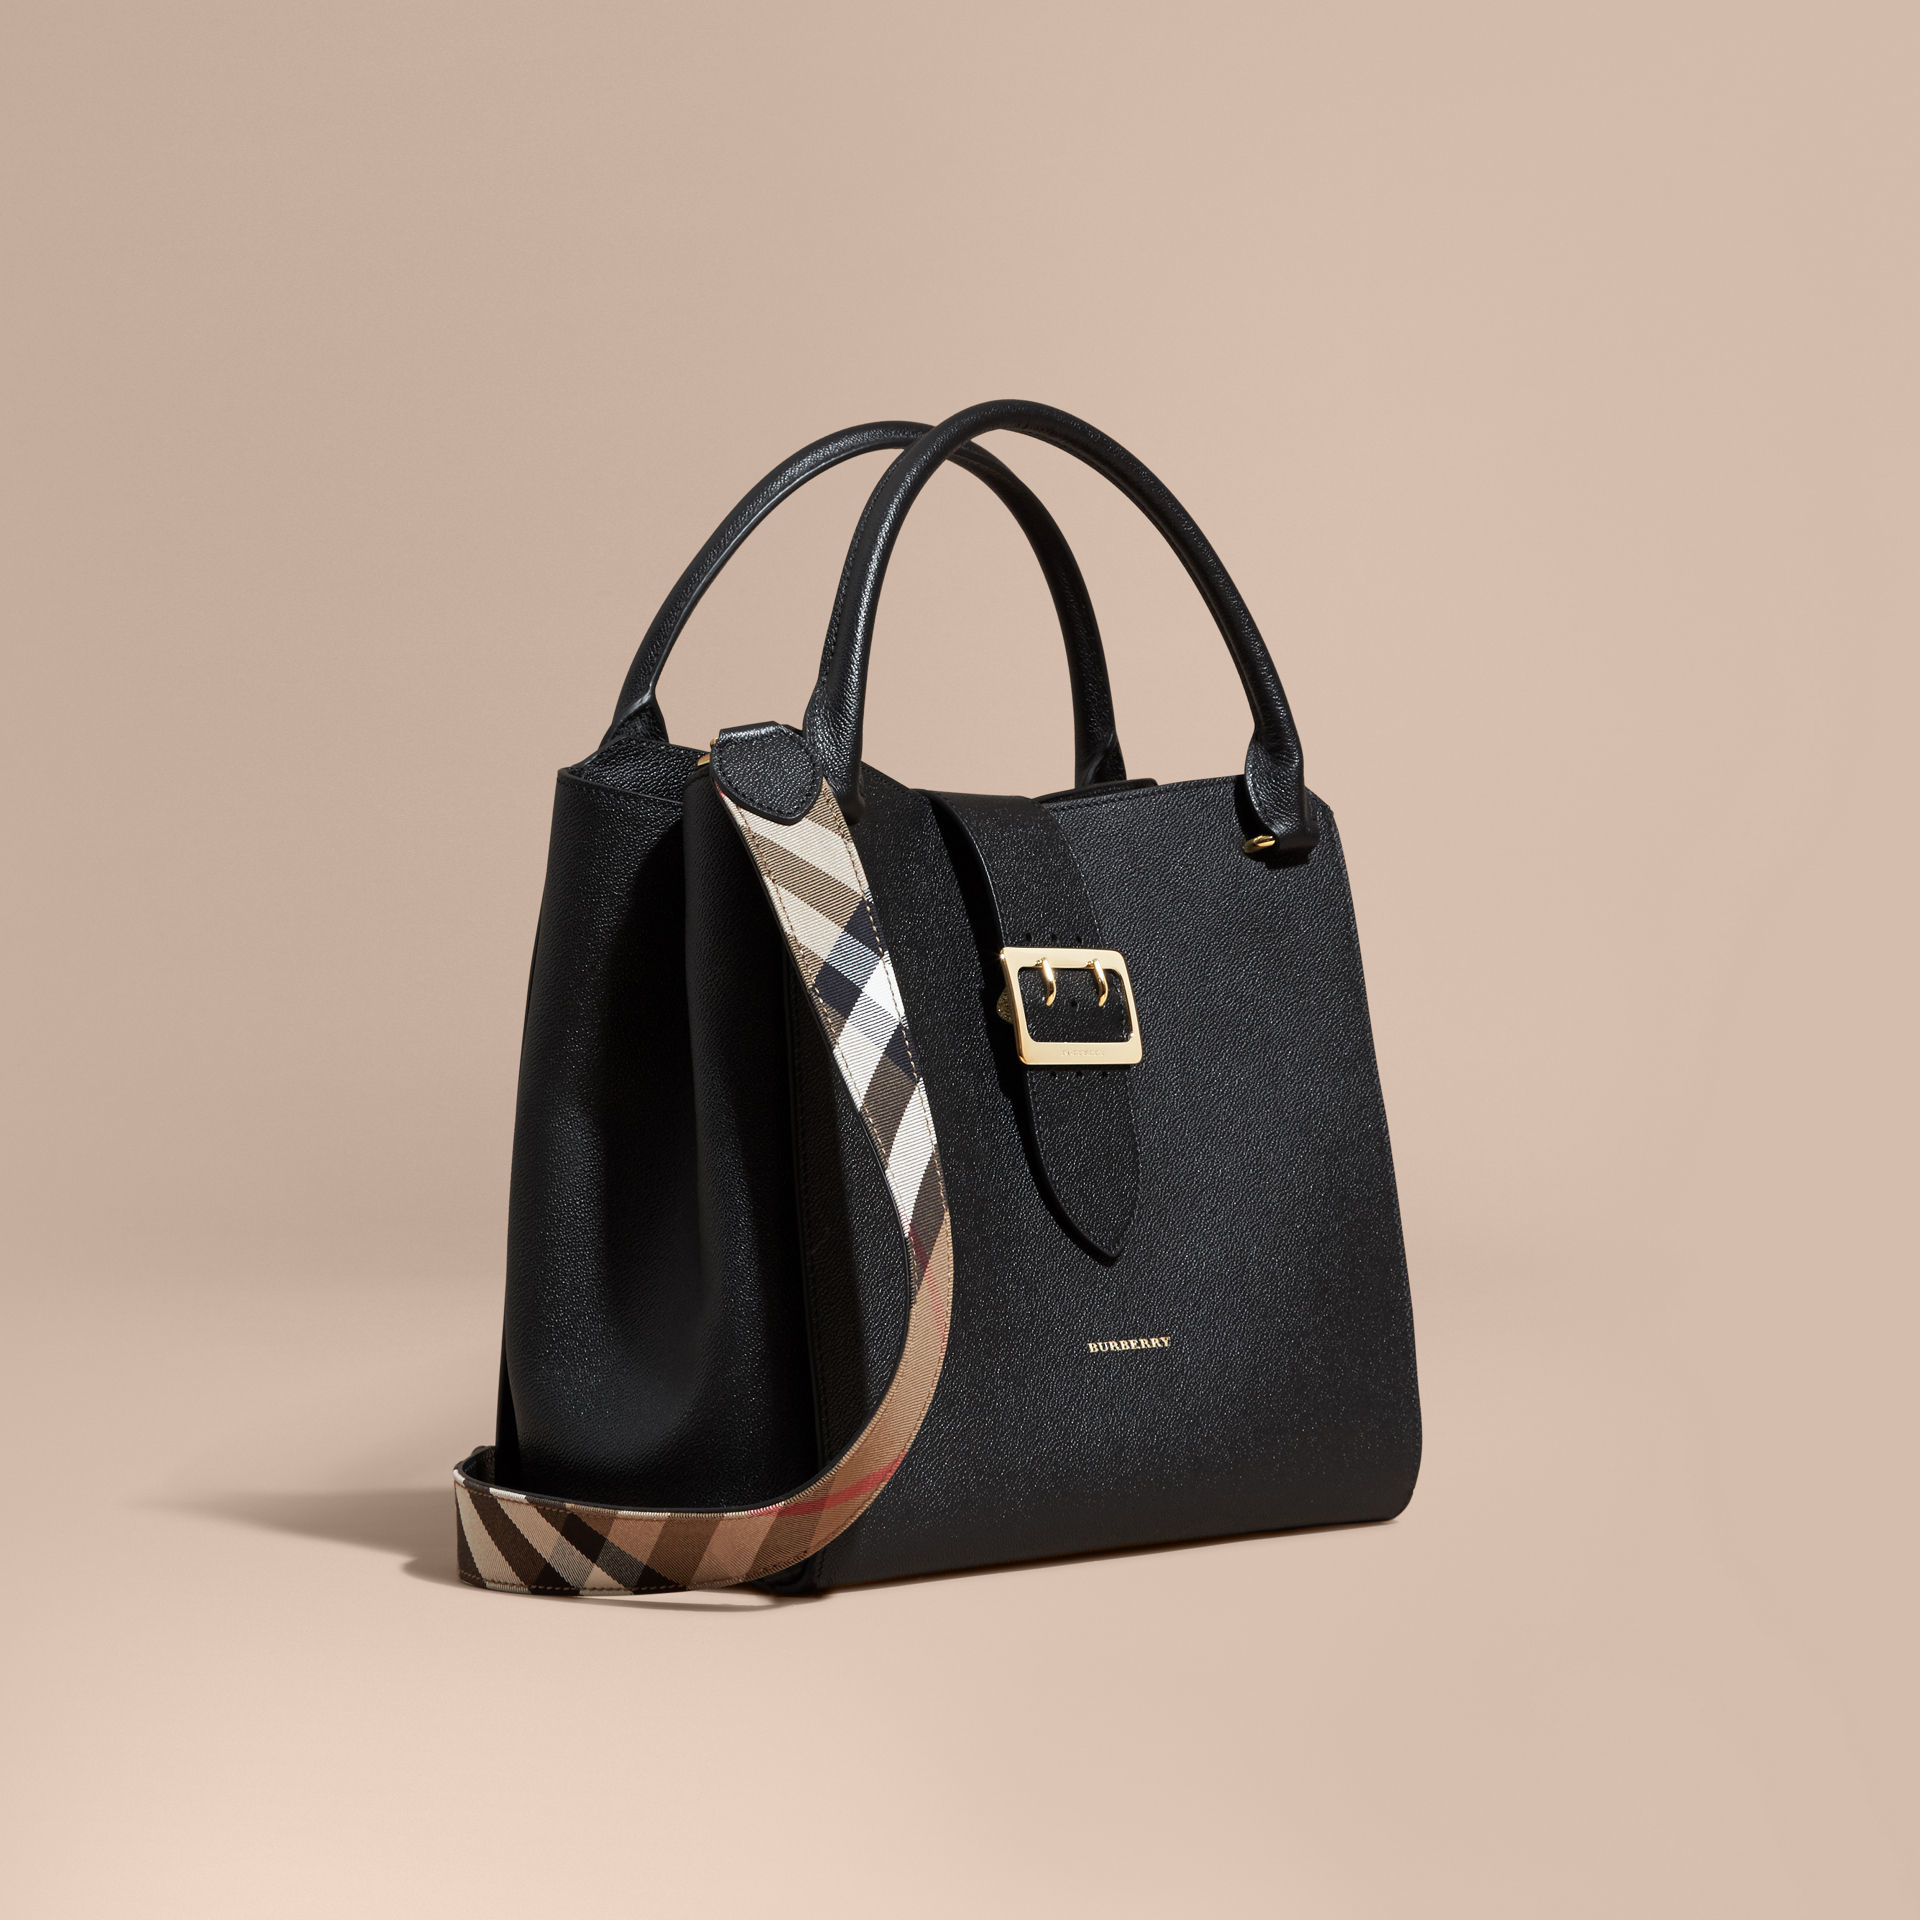 0b43464486ab Lyst - Burberry The Large Buckle Tote In Grainy Leather Black in Black